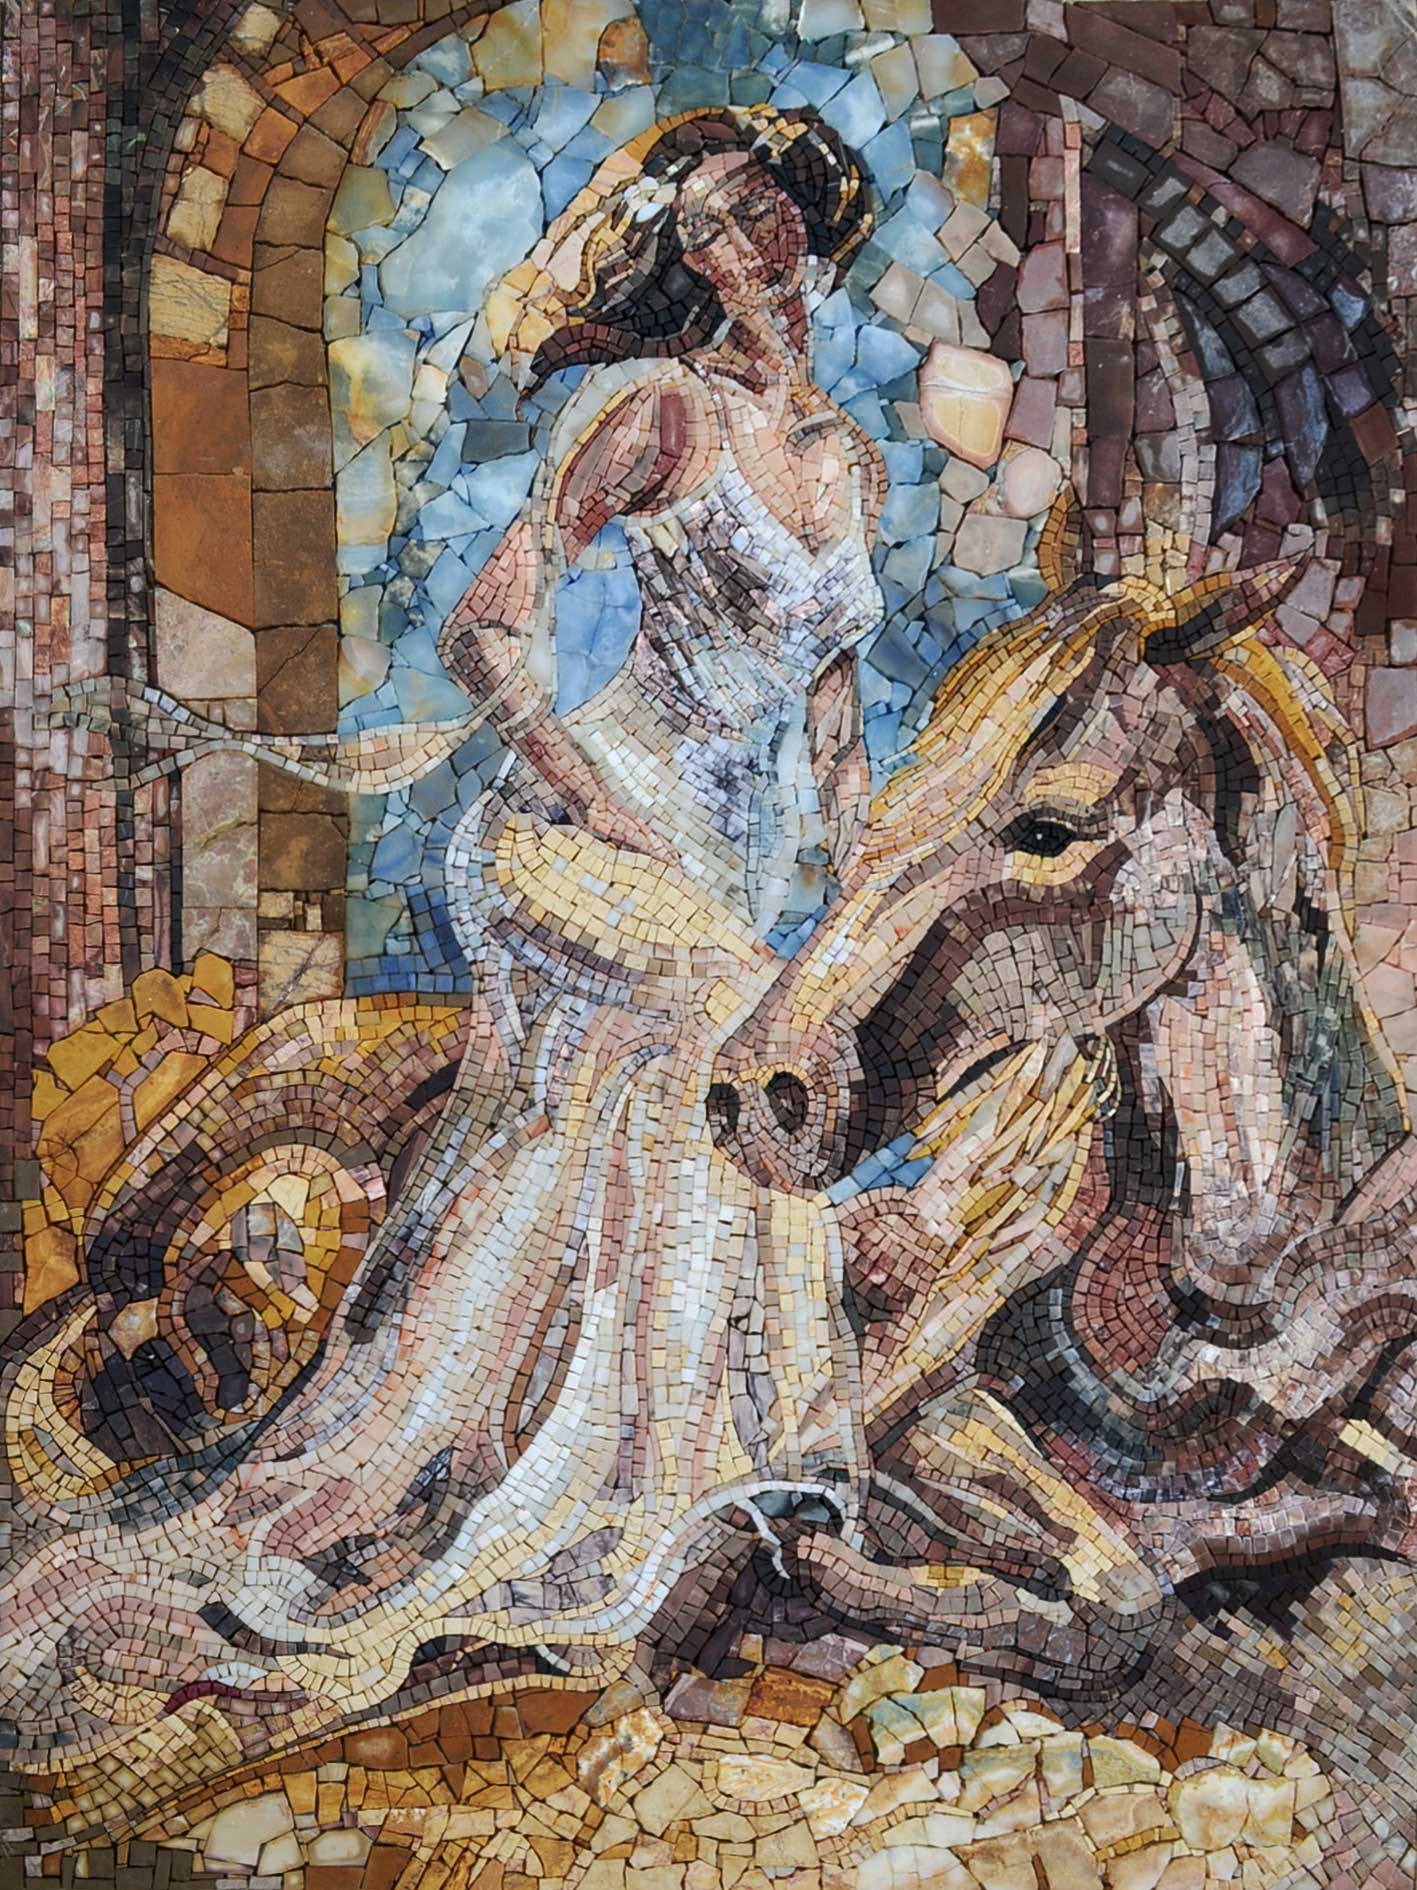 Mosaic Art Impressionism Image woman on horse